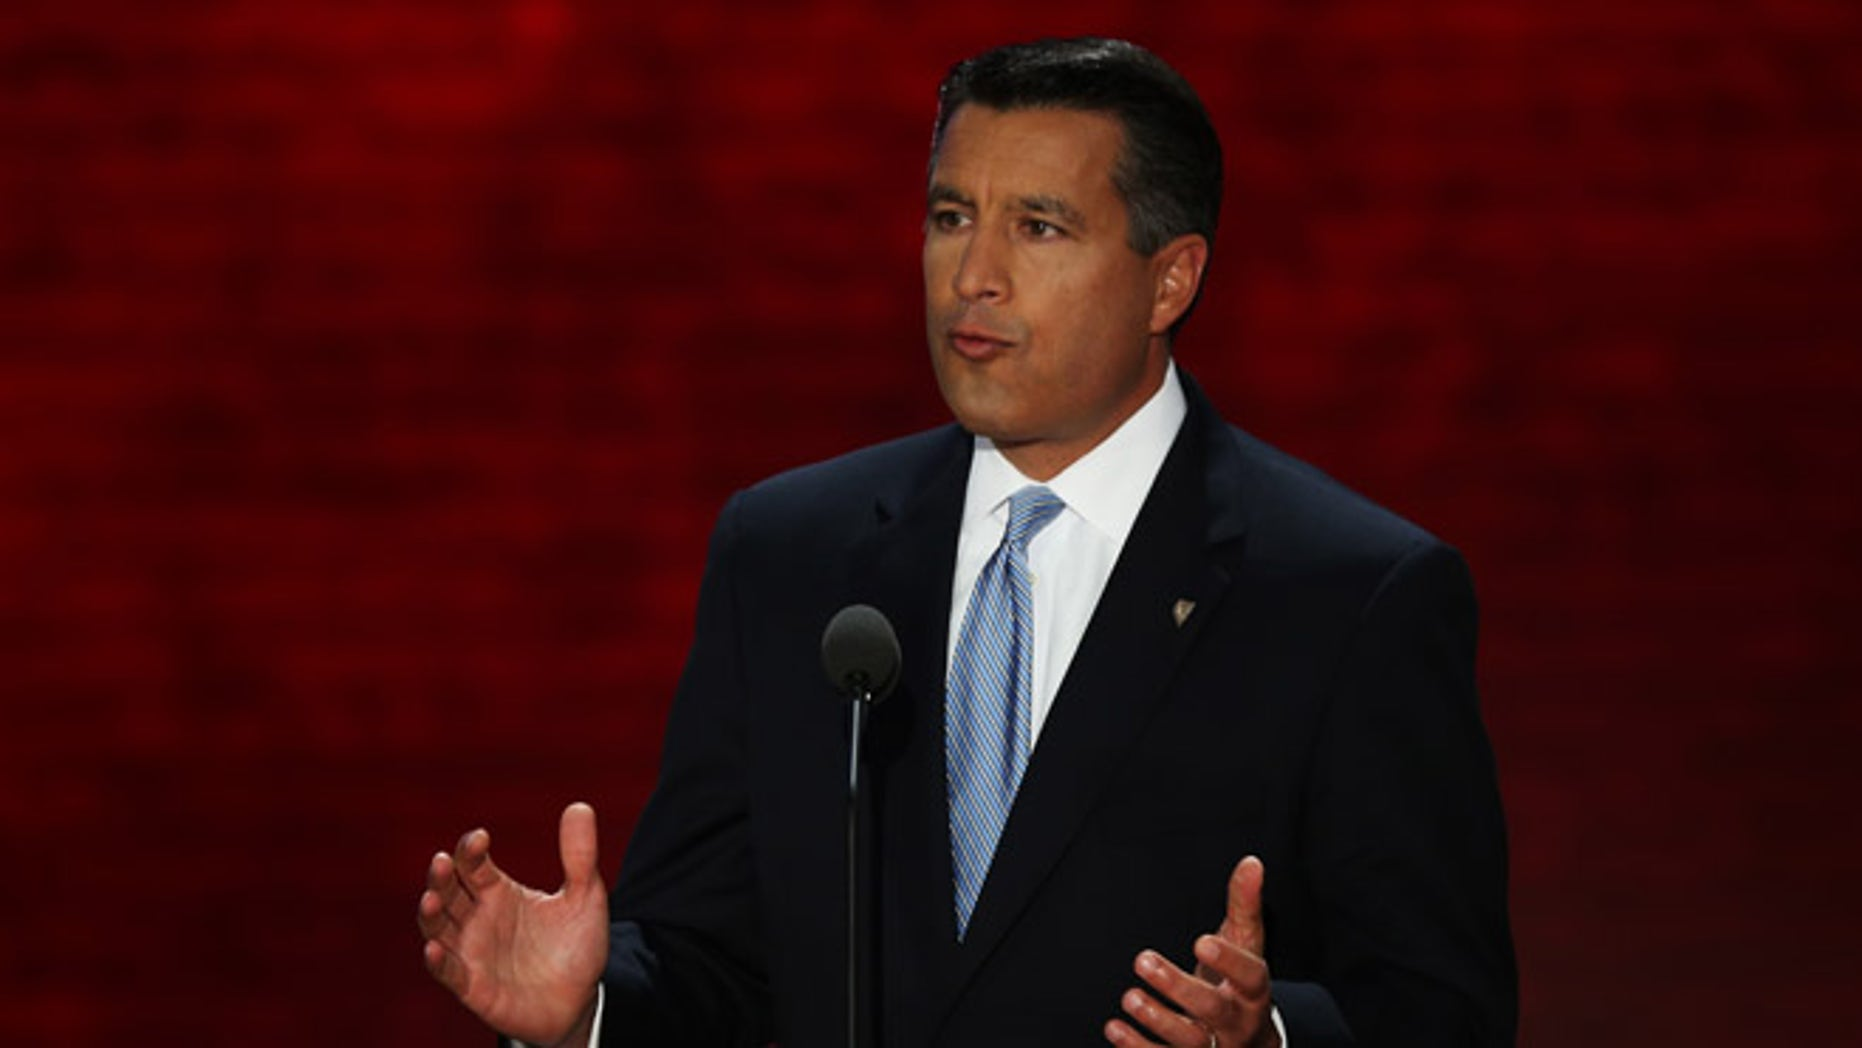 TAMPA, FL - AUGUST 28:  Nevada Gov. Brian Sandoval speaks during the Republican National Convention at the Tampa Bay Times Forum on August 28, 2012 in Tampa, Florida. Today is the first full session of the RNC after the start was delayed due to Tropical Storm Isaac.  (Photo by Mark Wilson/Getty Images)